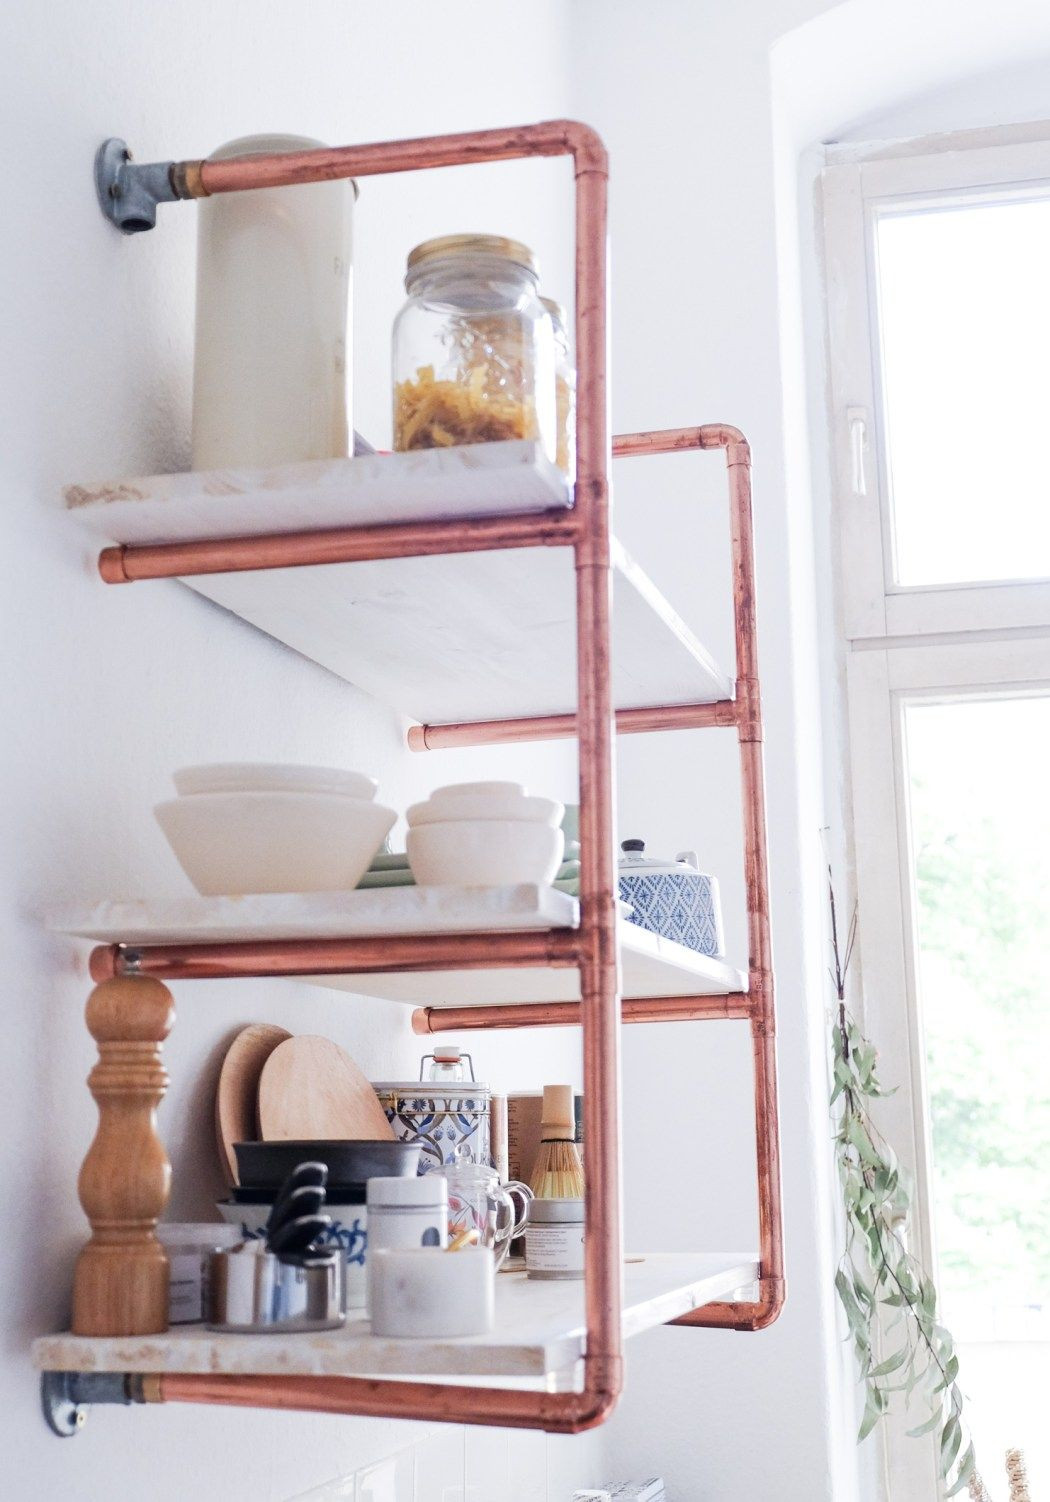 Best ideas about Pipe Shelves DIY . Save or Pin How To Build DIY Pipe Shelves For Your Home From Scratch Now.